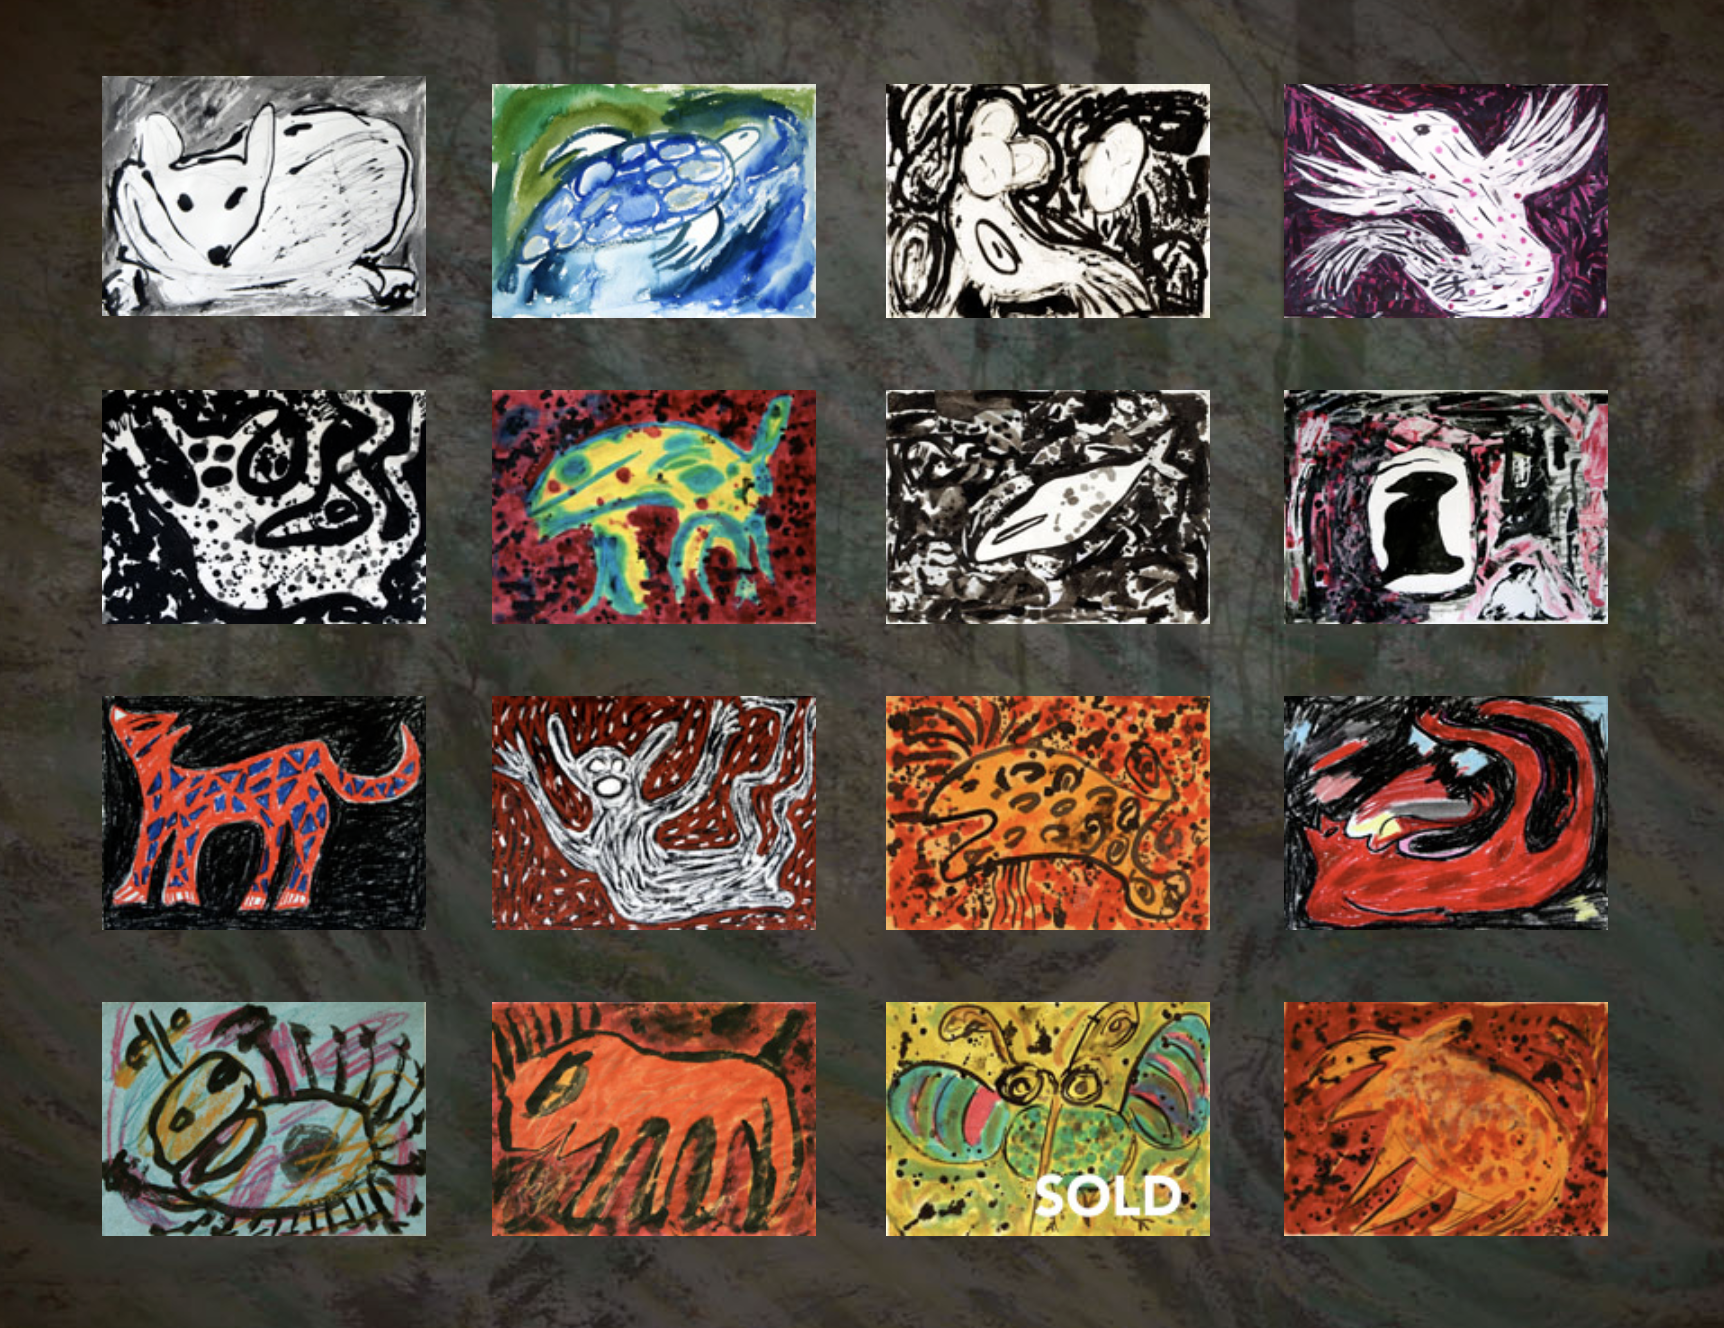 The Art That Saved The Animals